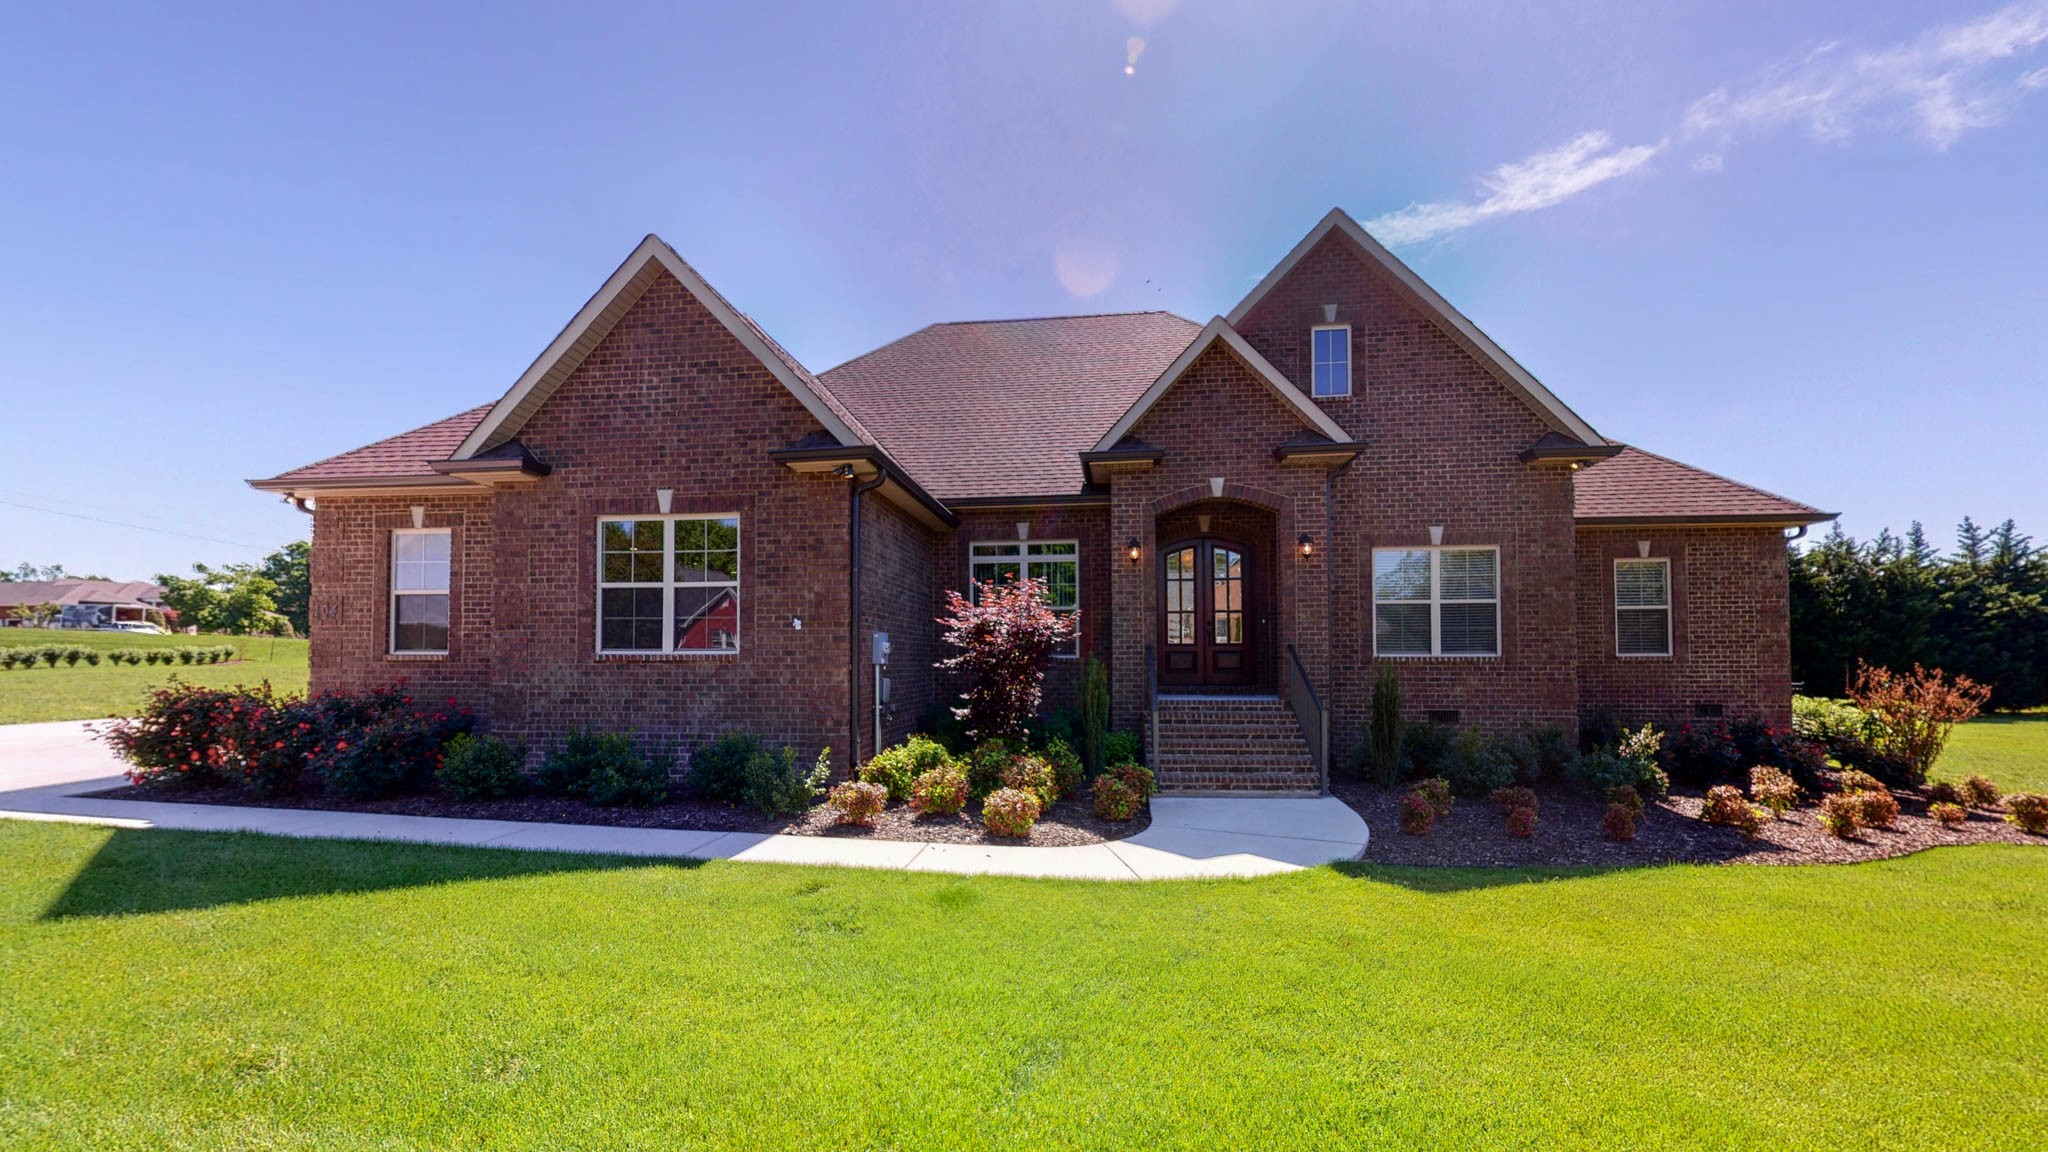 104 Garland Crest Ct N Property Photo - Tullahoma, TN real estate listing